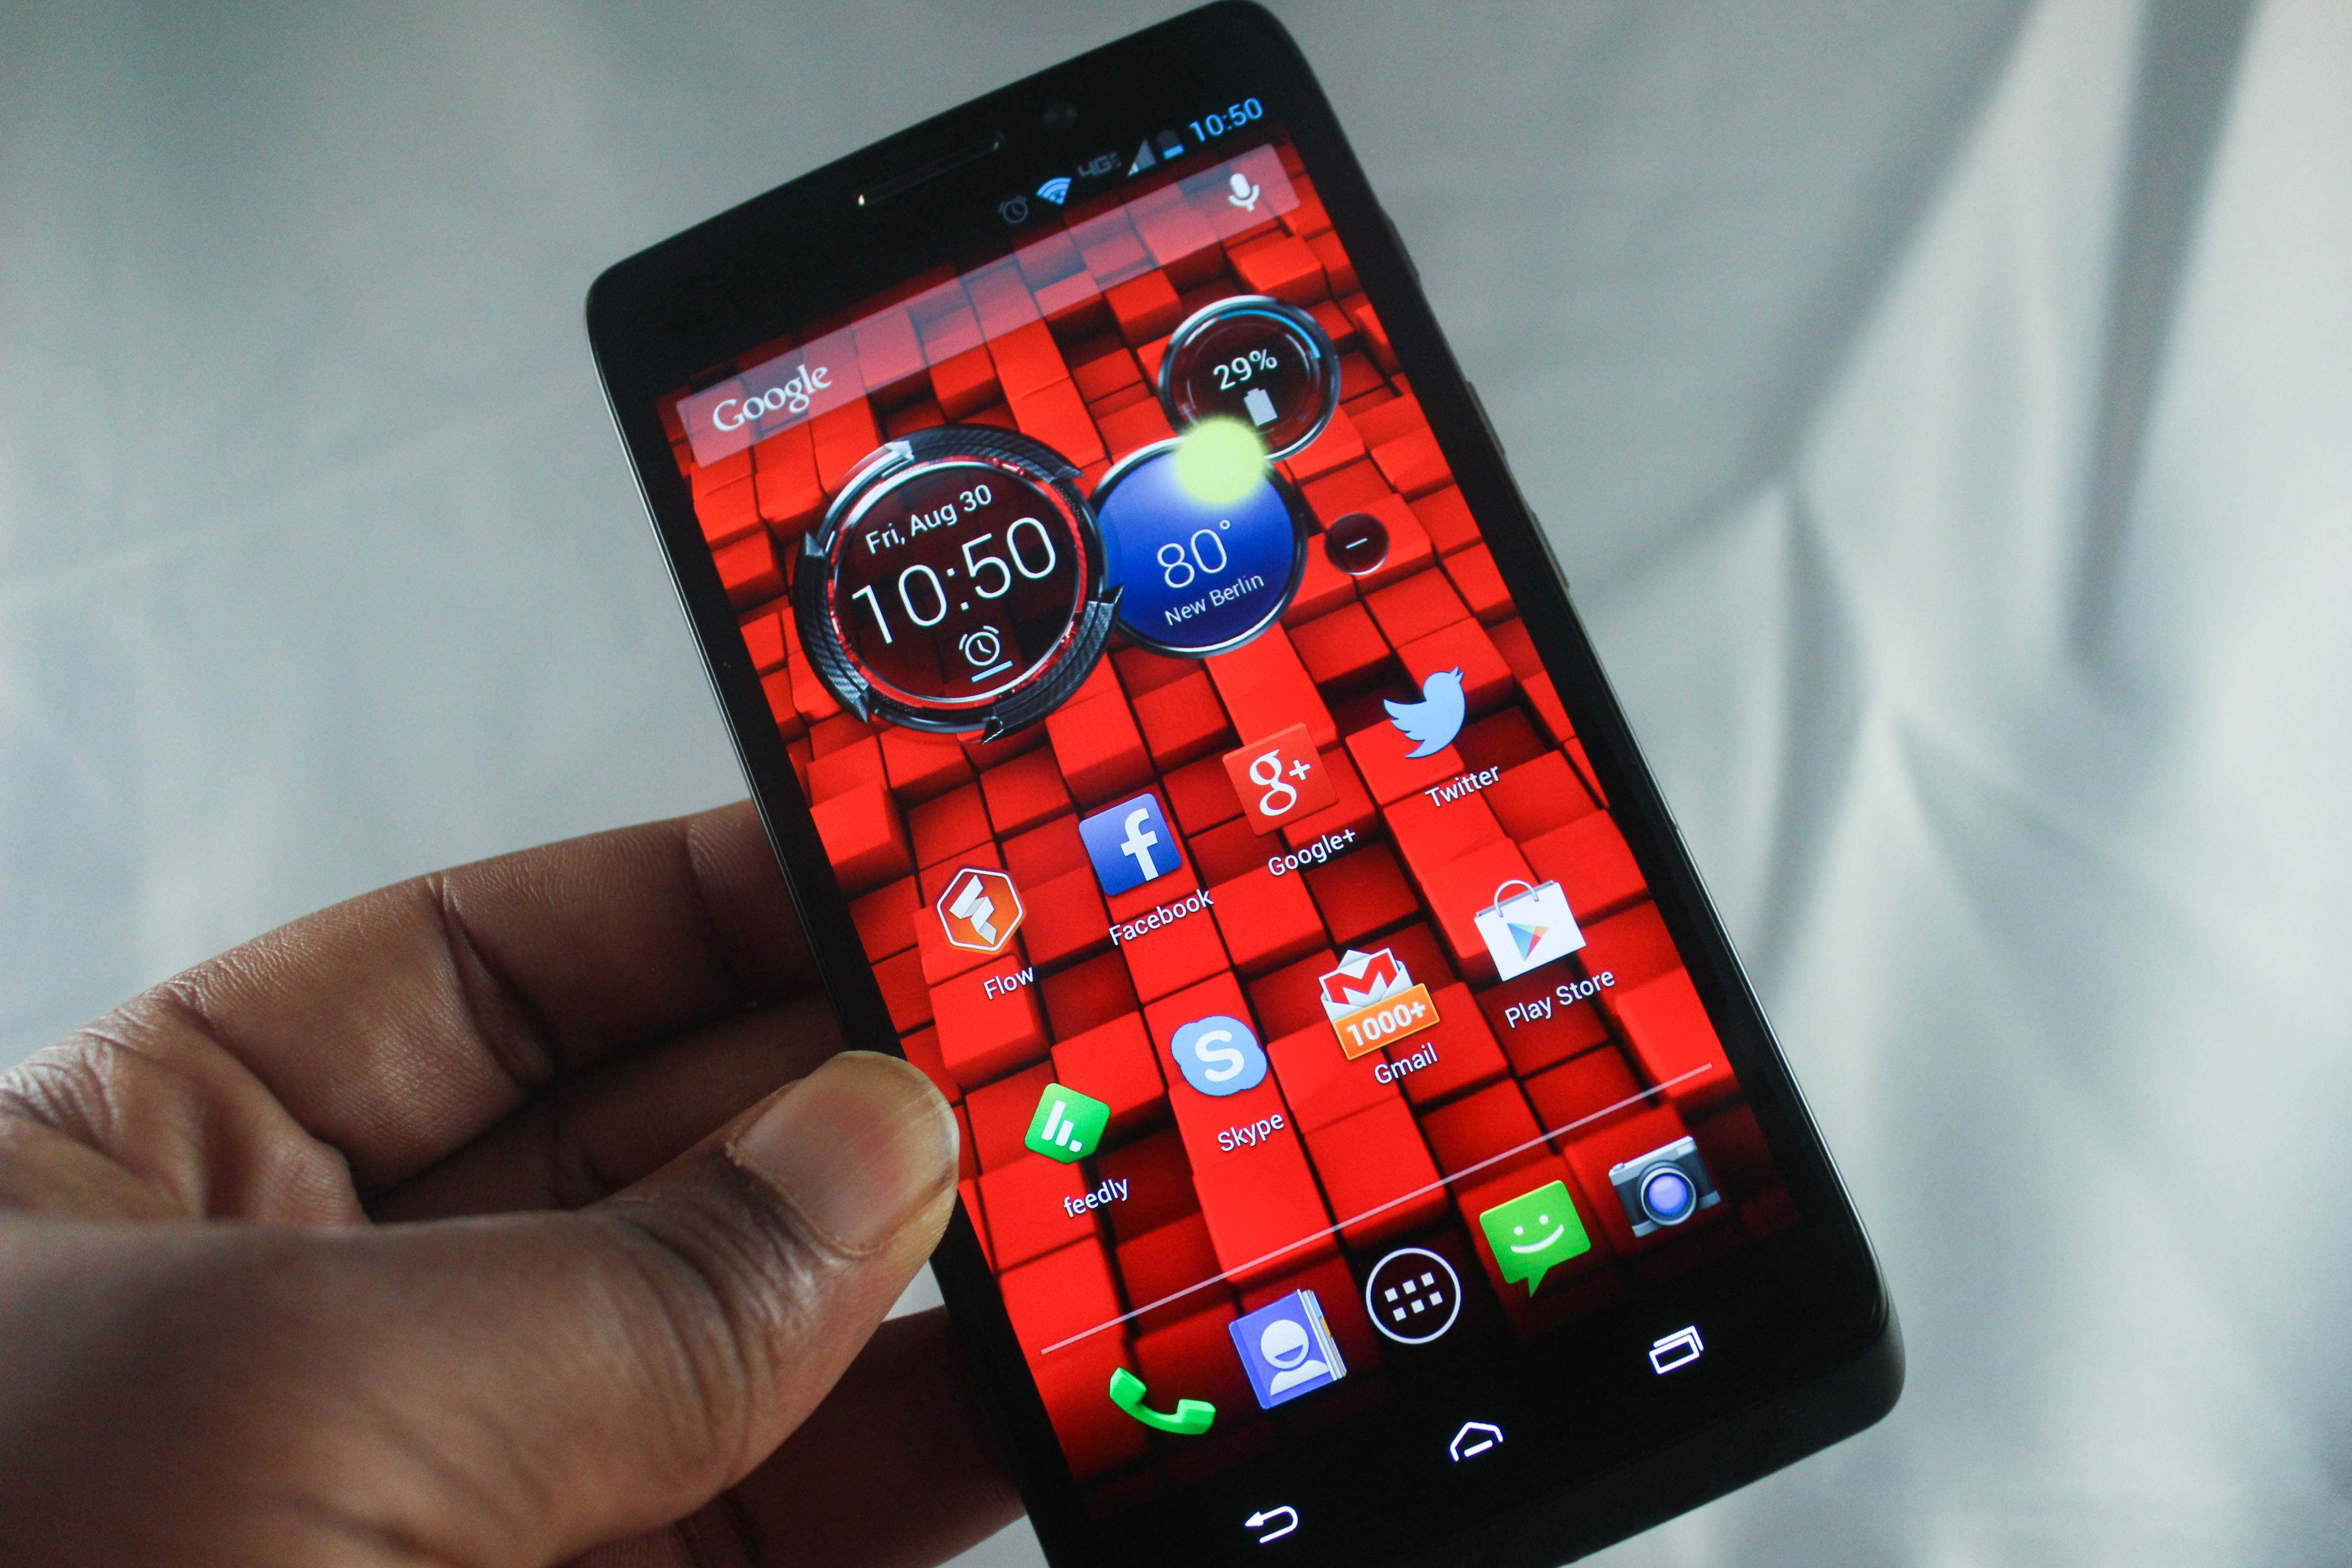 Verizon DROID Maxx 2 receiving its Android 6.0 Marshmallow update